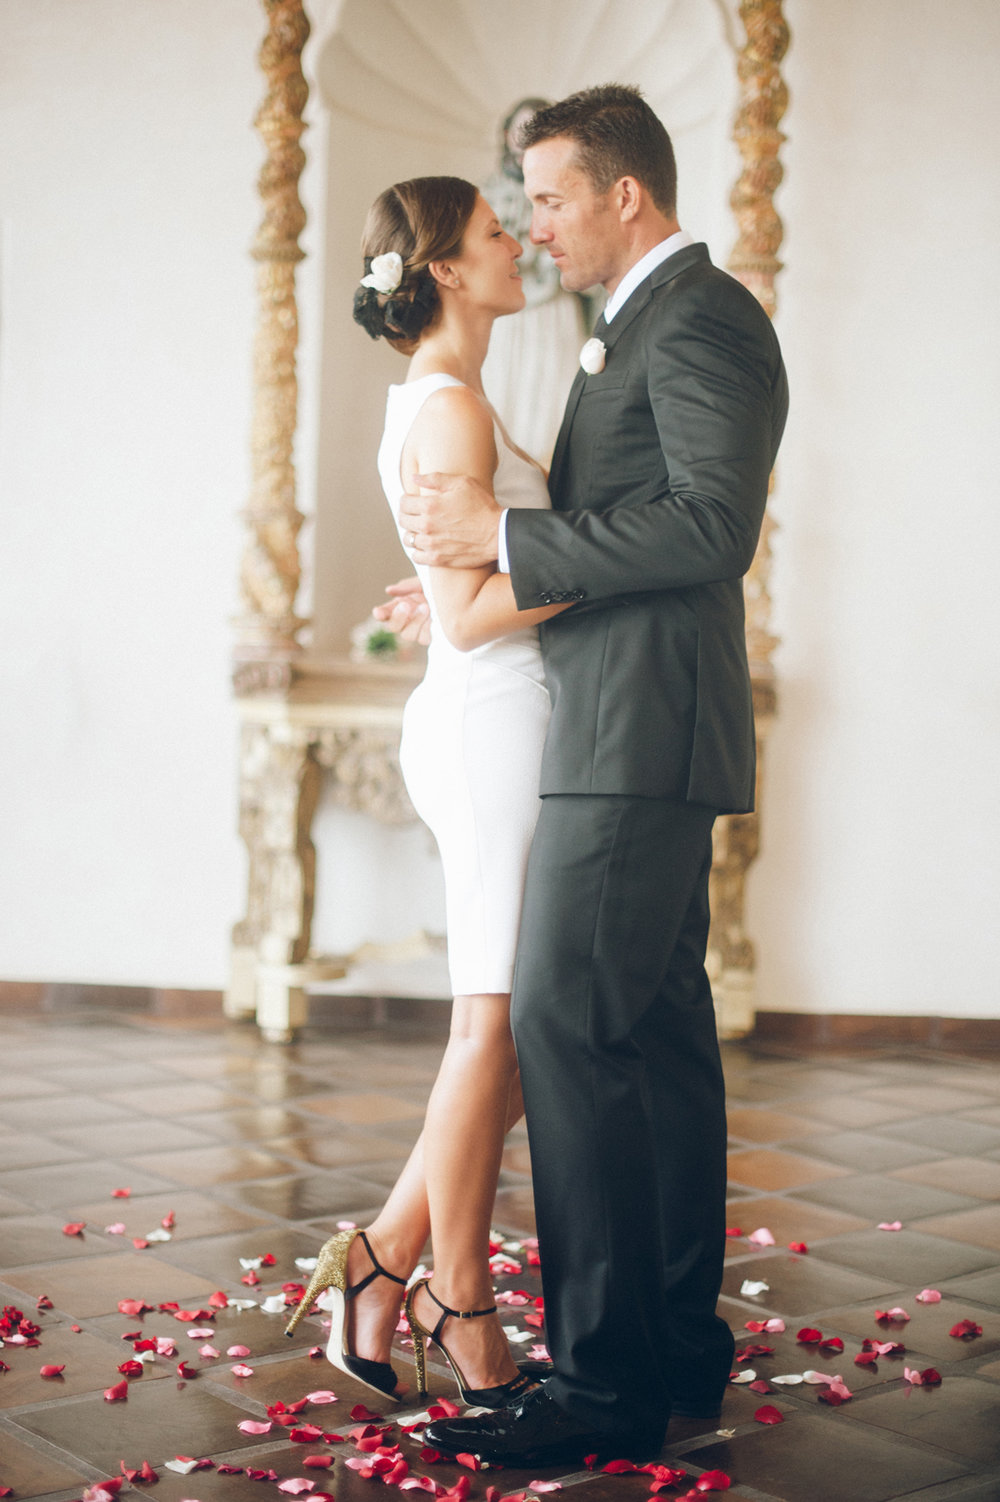 hacienda_san_angel_wedding_028.jpg